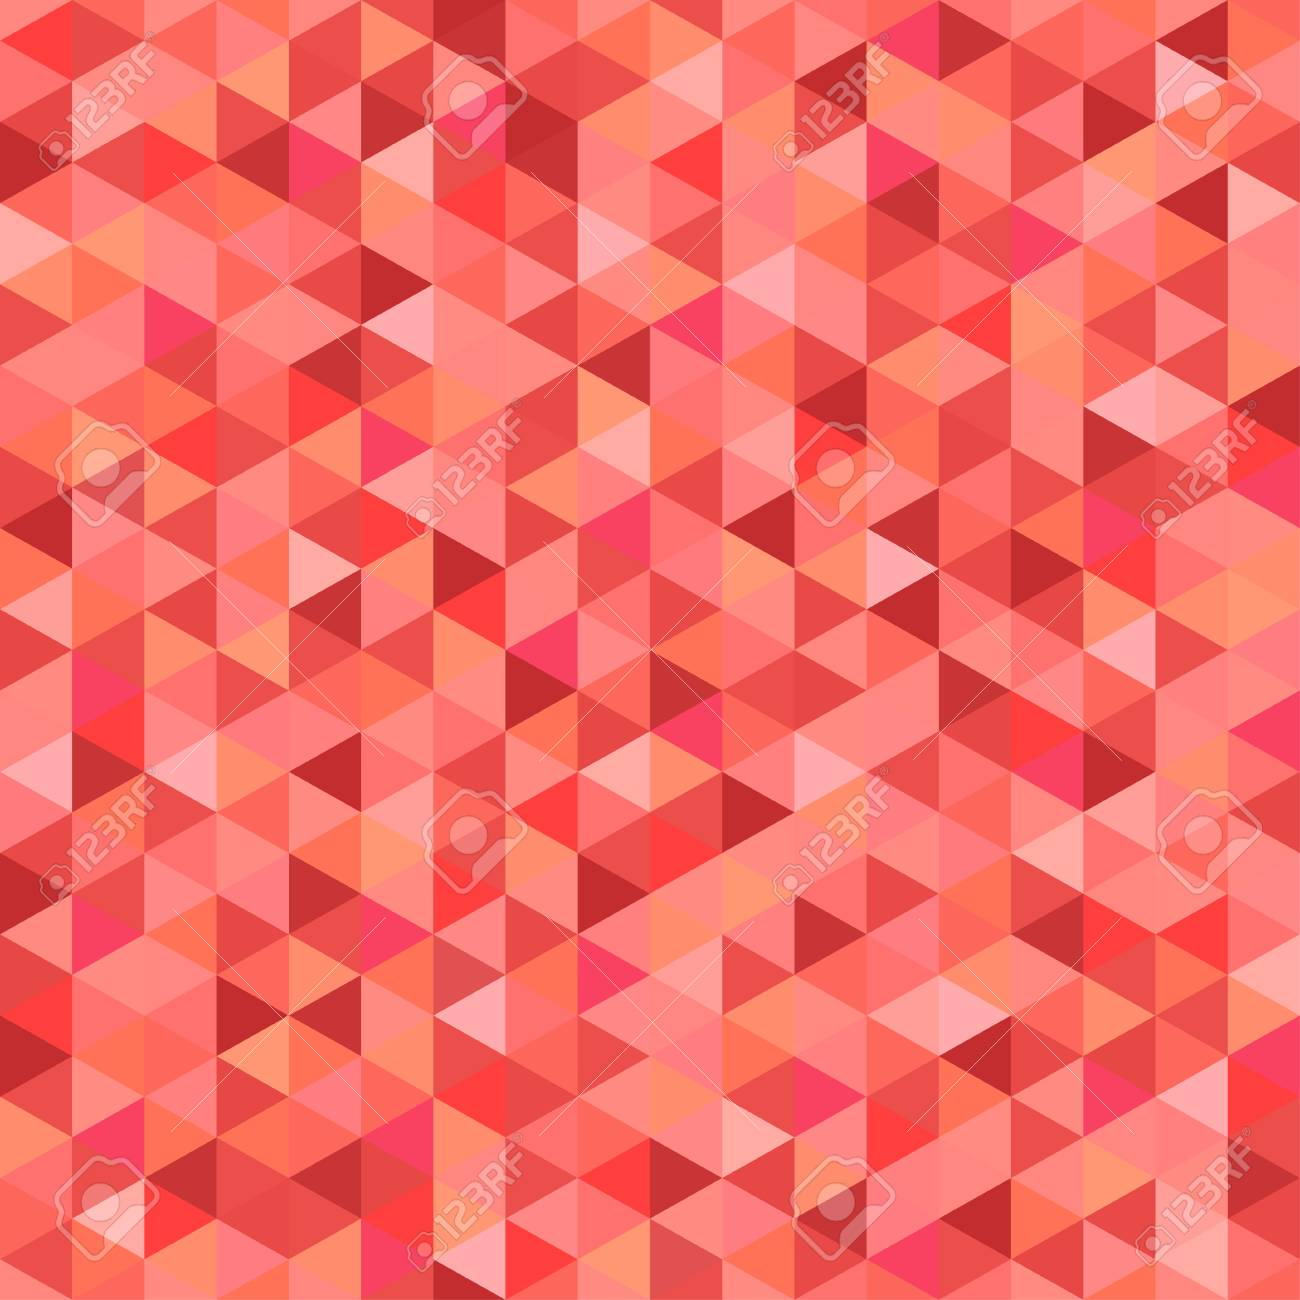 112404797 seamless triangle pattern abstract geometric wallpaper of the surface tiled background light colors